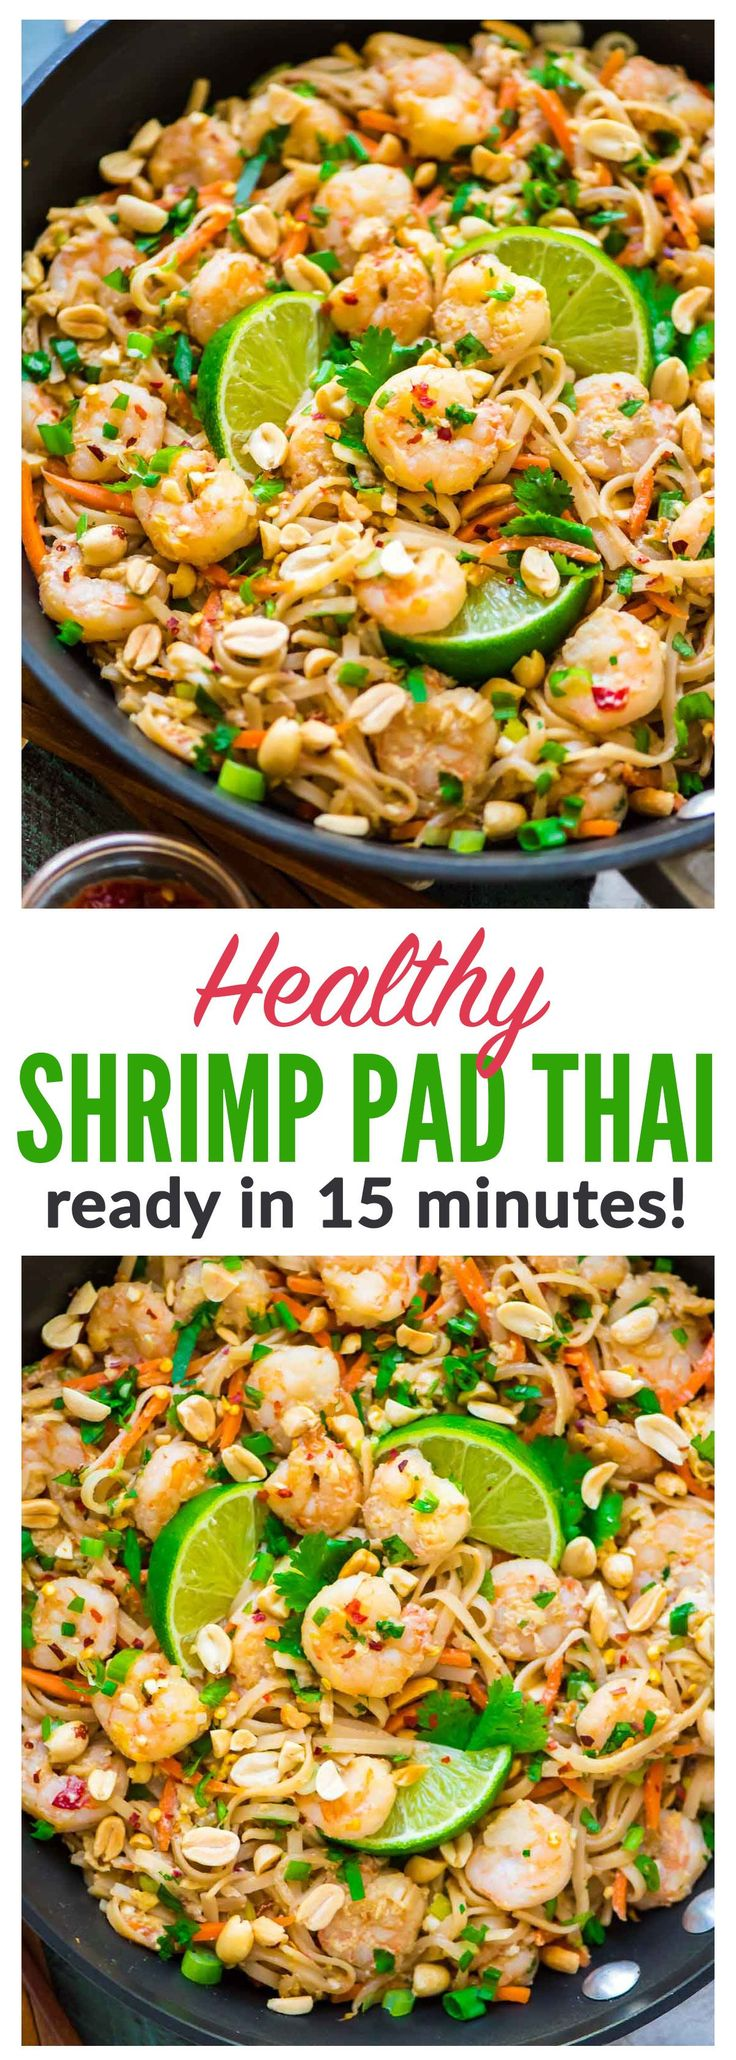 Healthy Shrimp Pad Thai. EASY and SO delicious! Ready in 15 minutes. We couldn't stop eating it! Recipe at wellplated.com | @wellplated {gluten free}